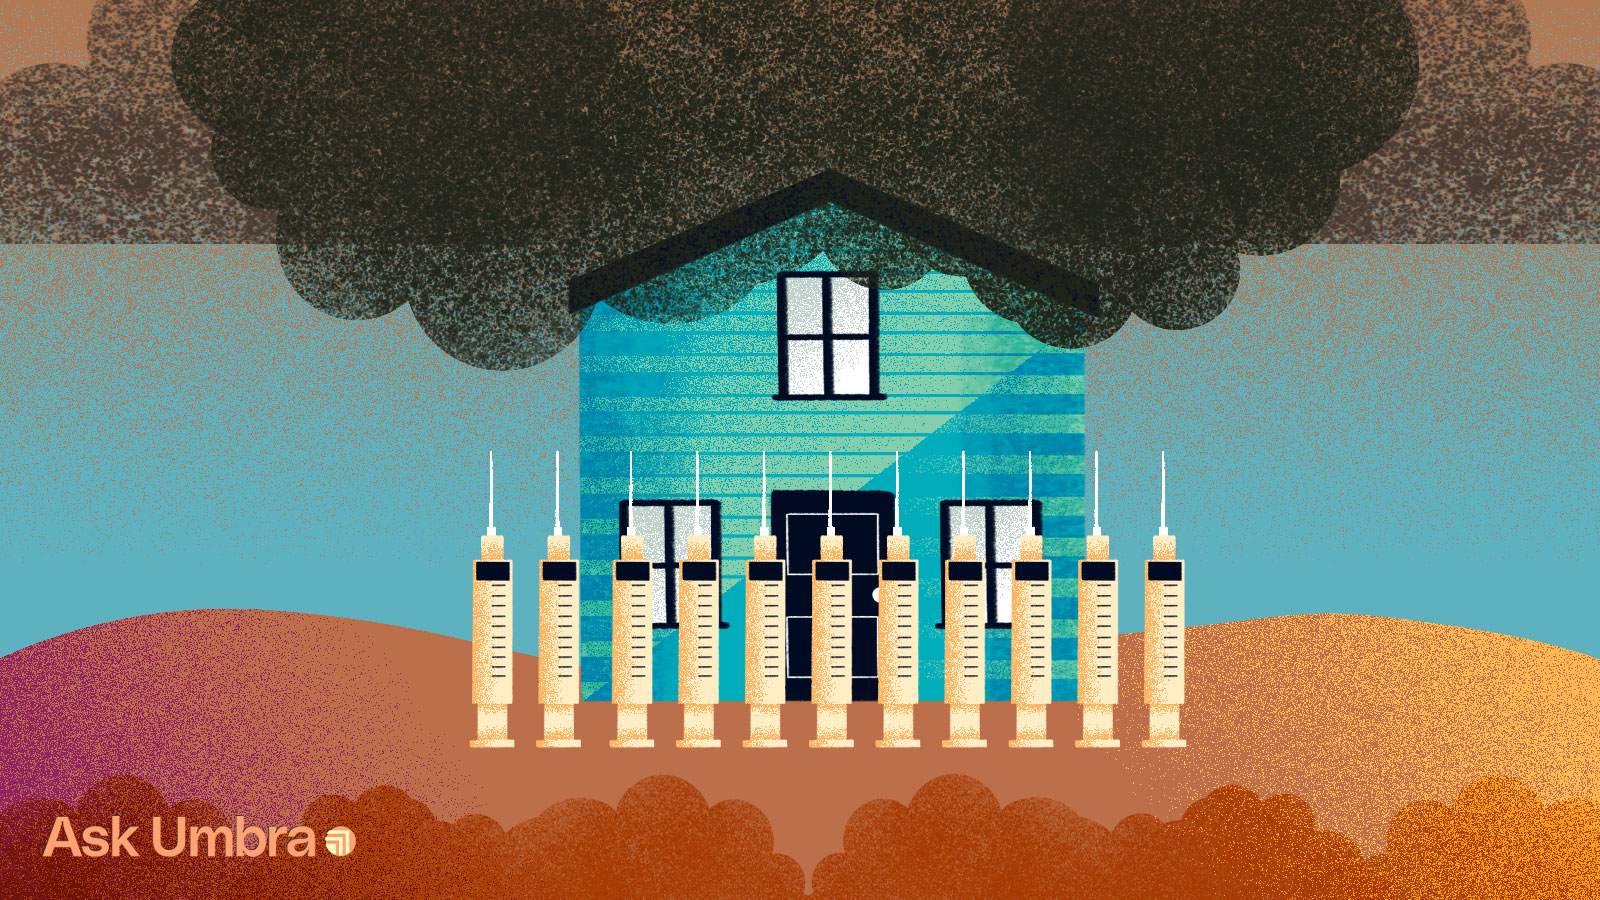 Illustration of a house with a picket fence made of syringes and smog clouds hovering above